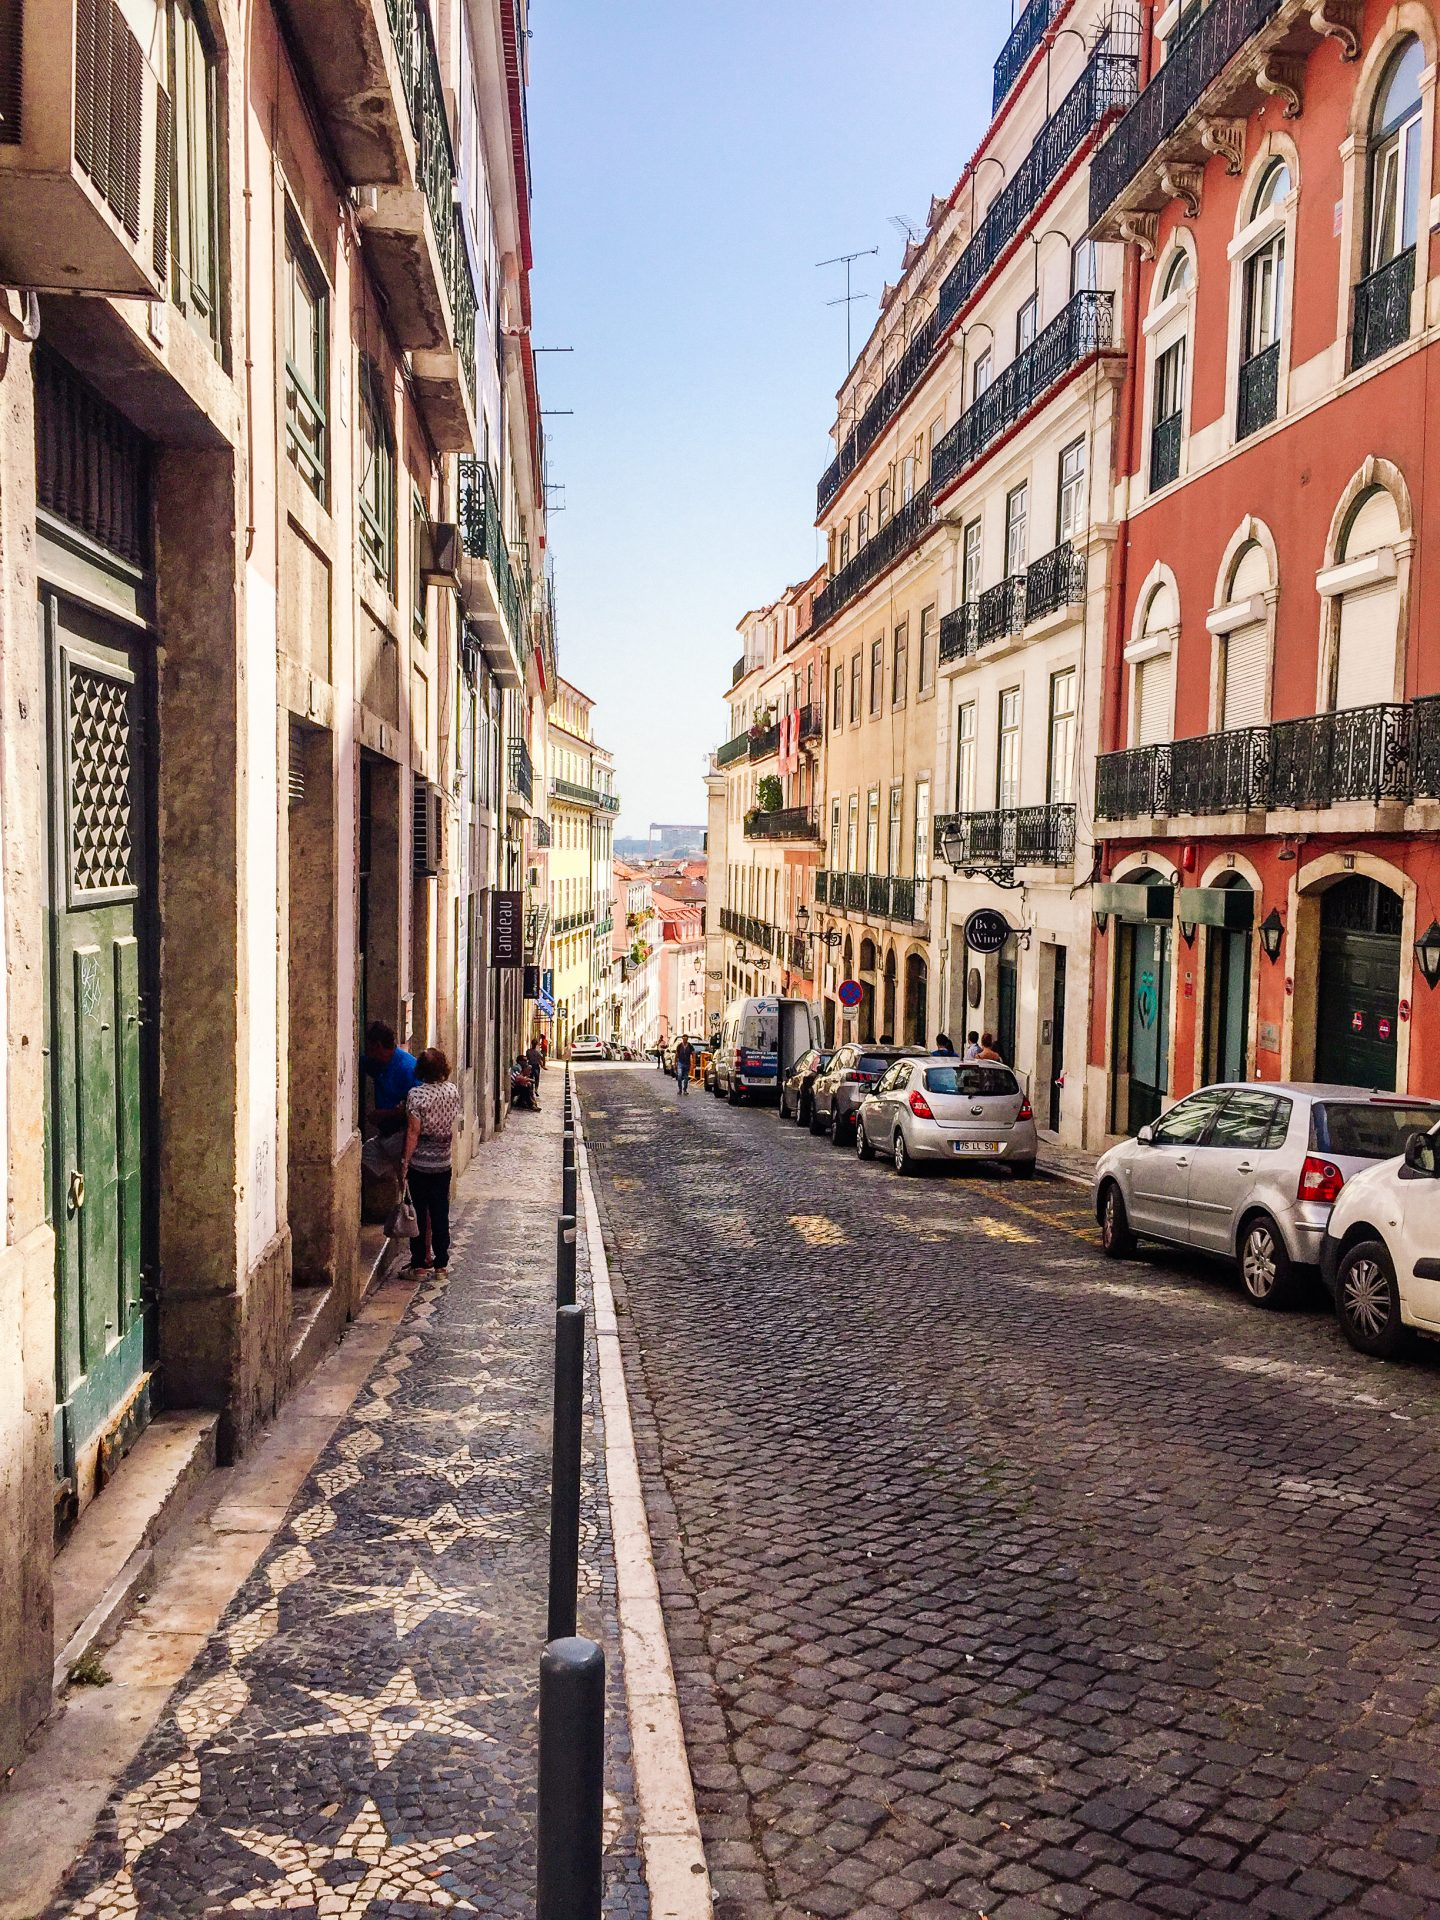 10 Reasons Why Lisbon, Portugal Should Be Your Next Destination